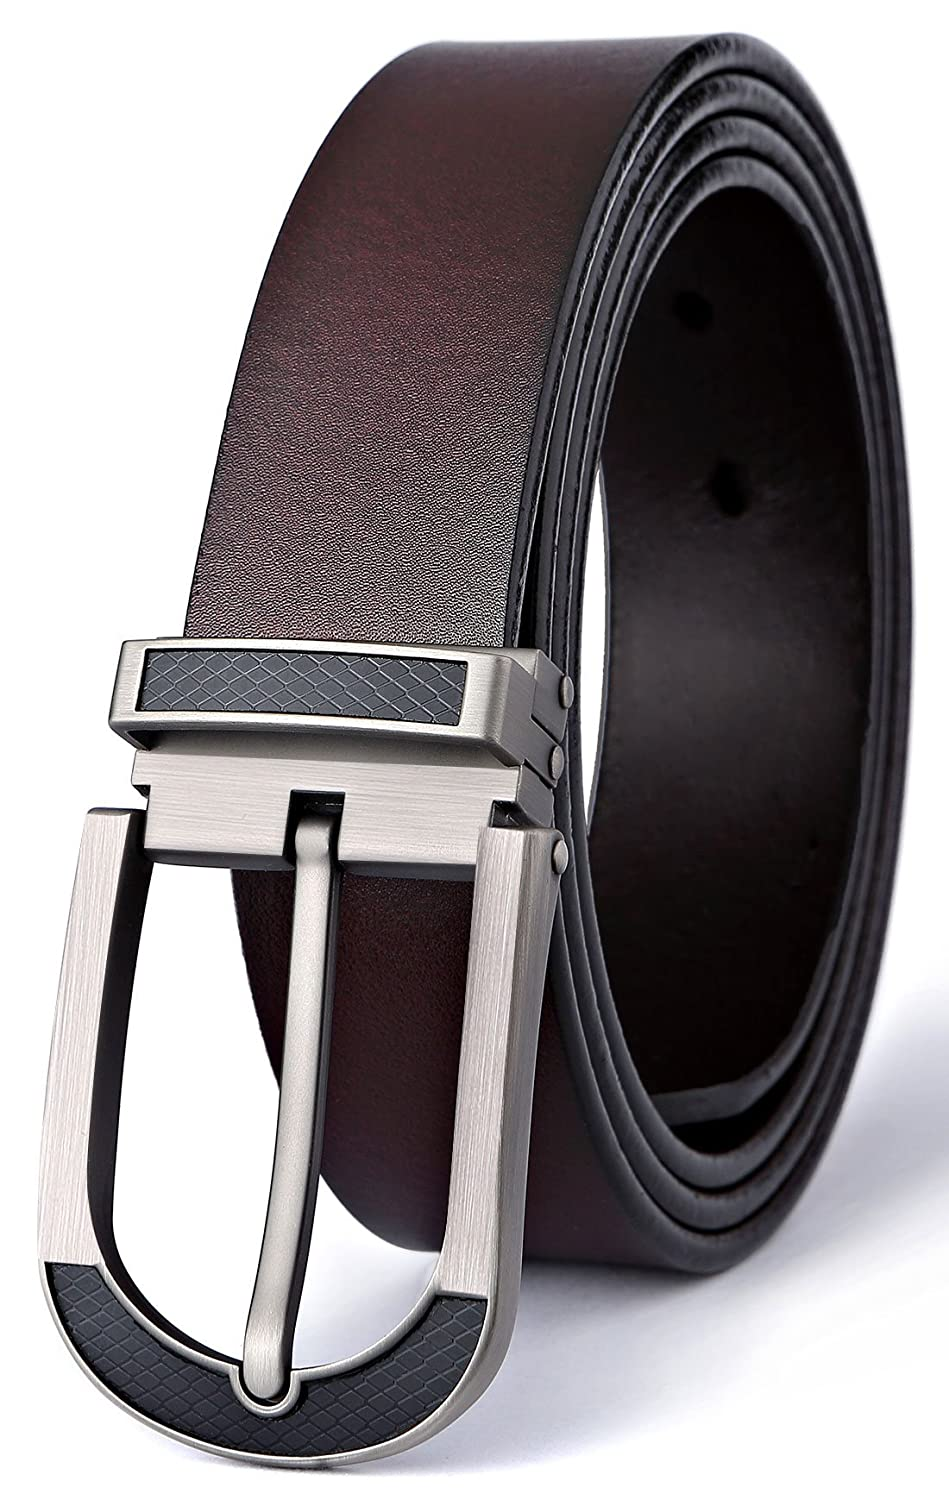 Men's Belt, Bulliant Leather Adjustable Belt for Men Dress Casual 1 3/8, Trim to Fit